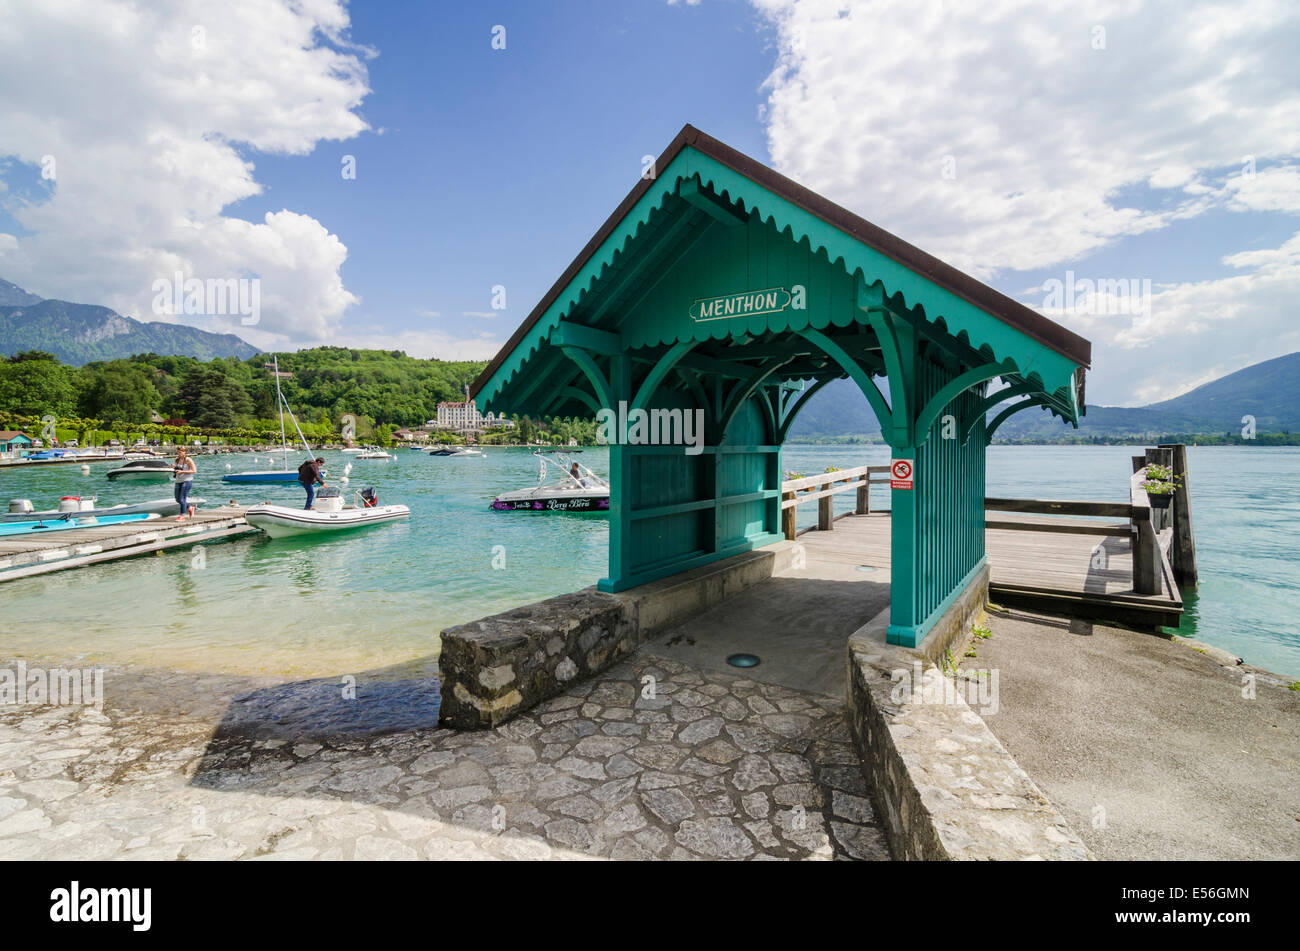 Wooden boat stop on Lake Annecy, Menthon-Saint-Bernard, Annecy, Haute-Savoie, Rhone-Alpes, France - Stock Image